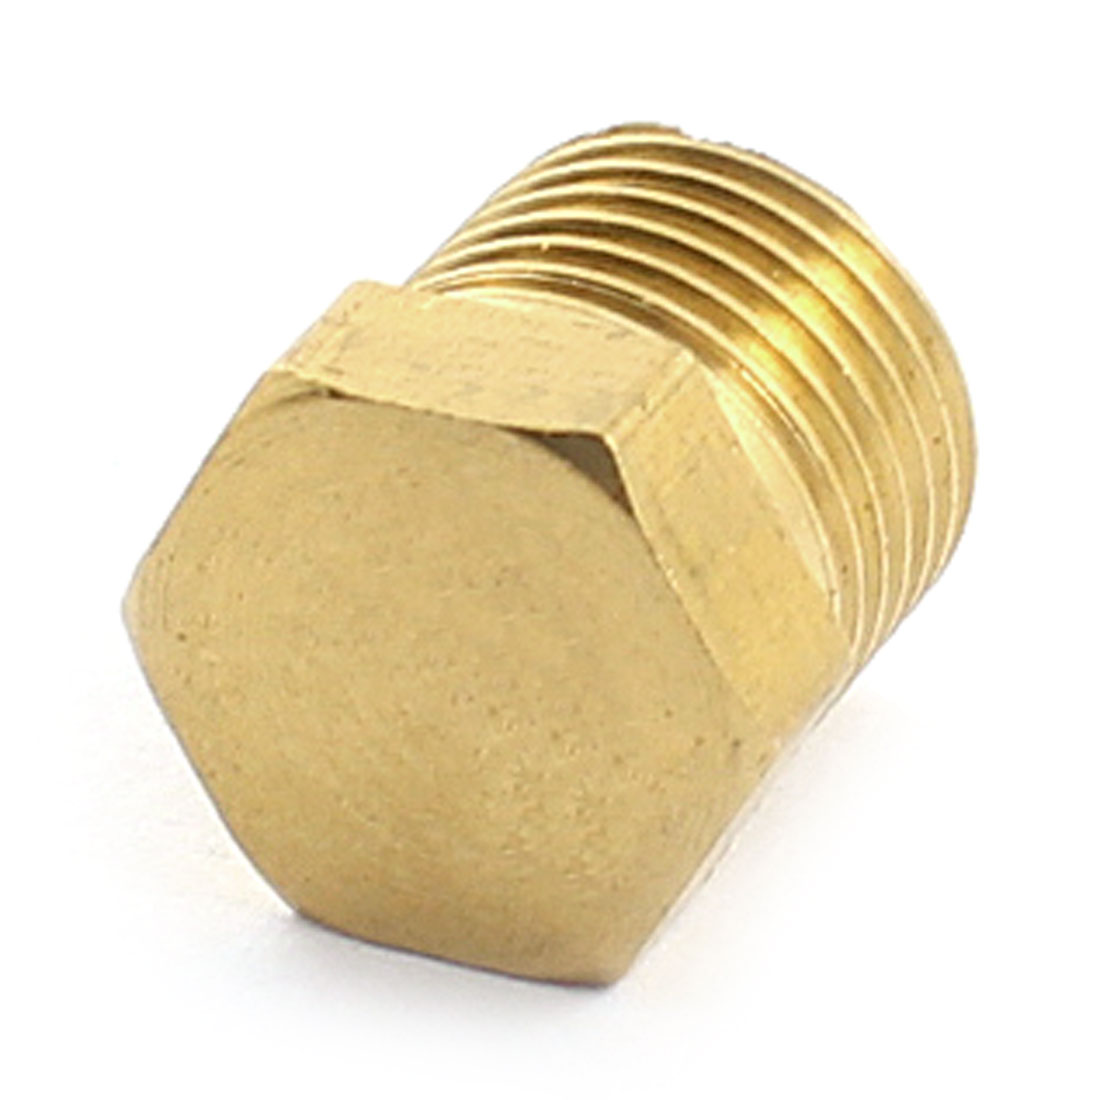 1/8PT Male Thread 11mm Height Brass Hex Socket Head Pipe Connector Coupler Coupling